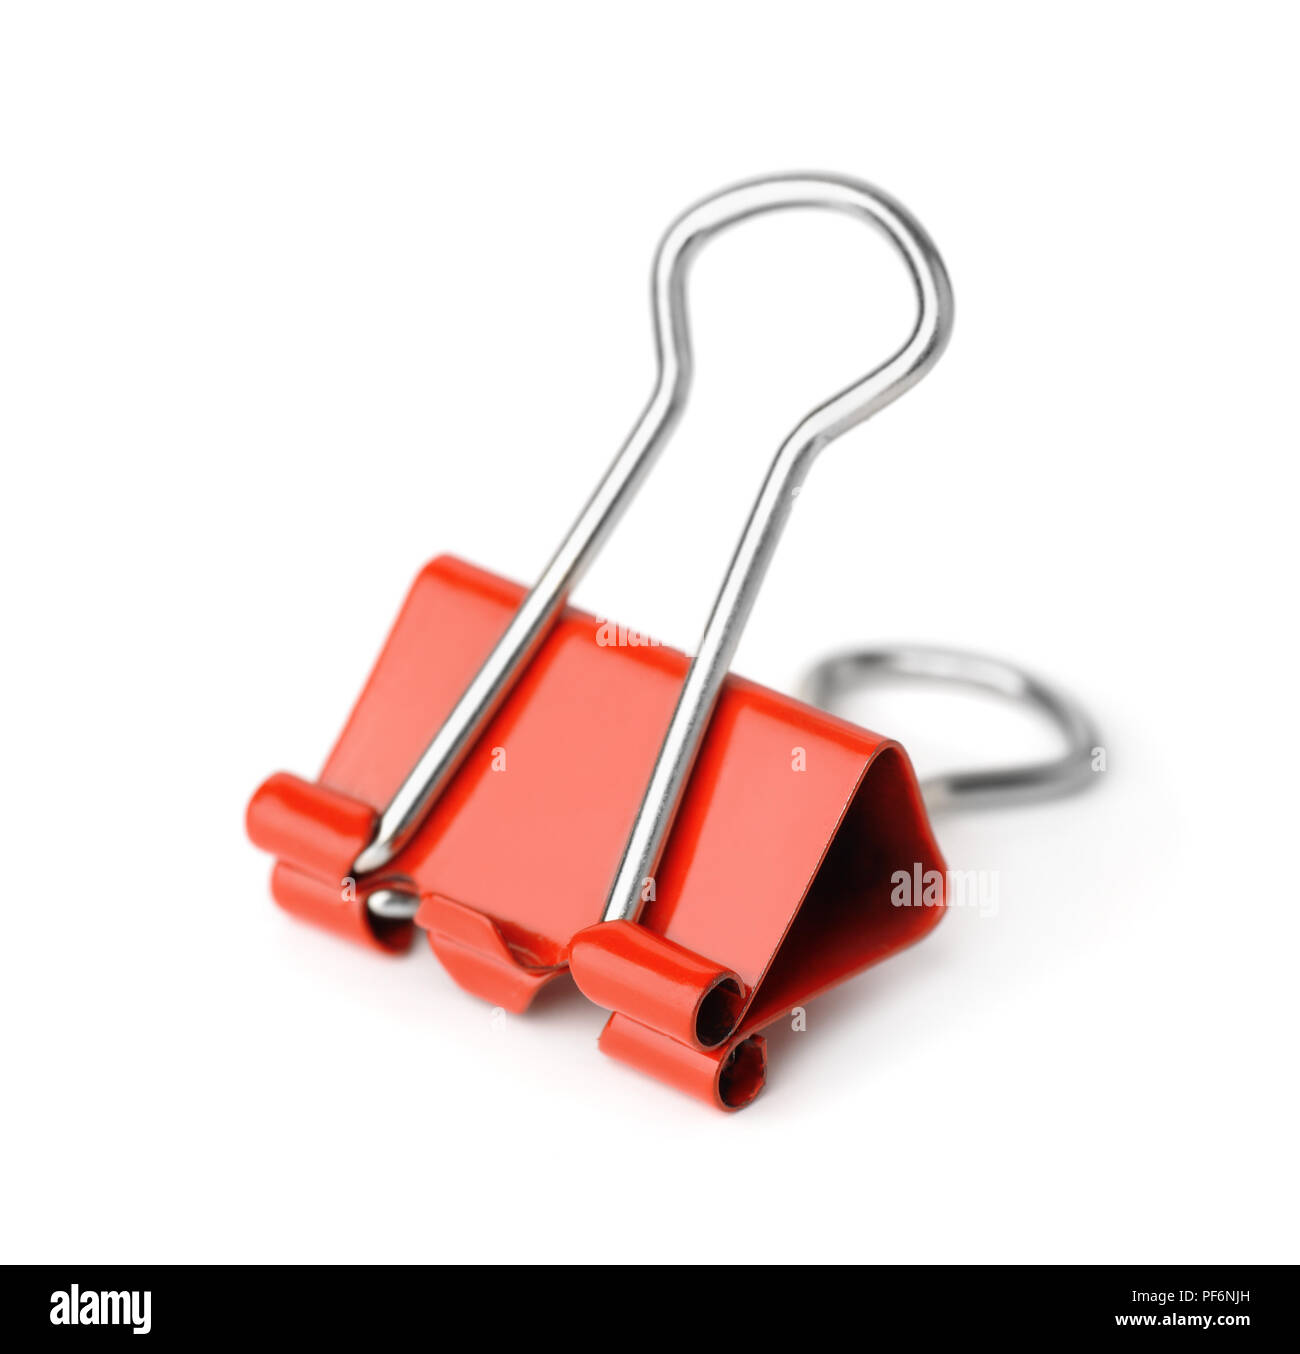 Red metal binder clip isolated on white - Stock Image